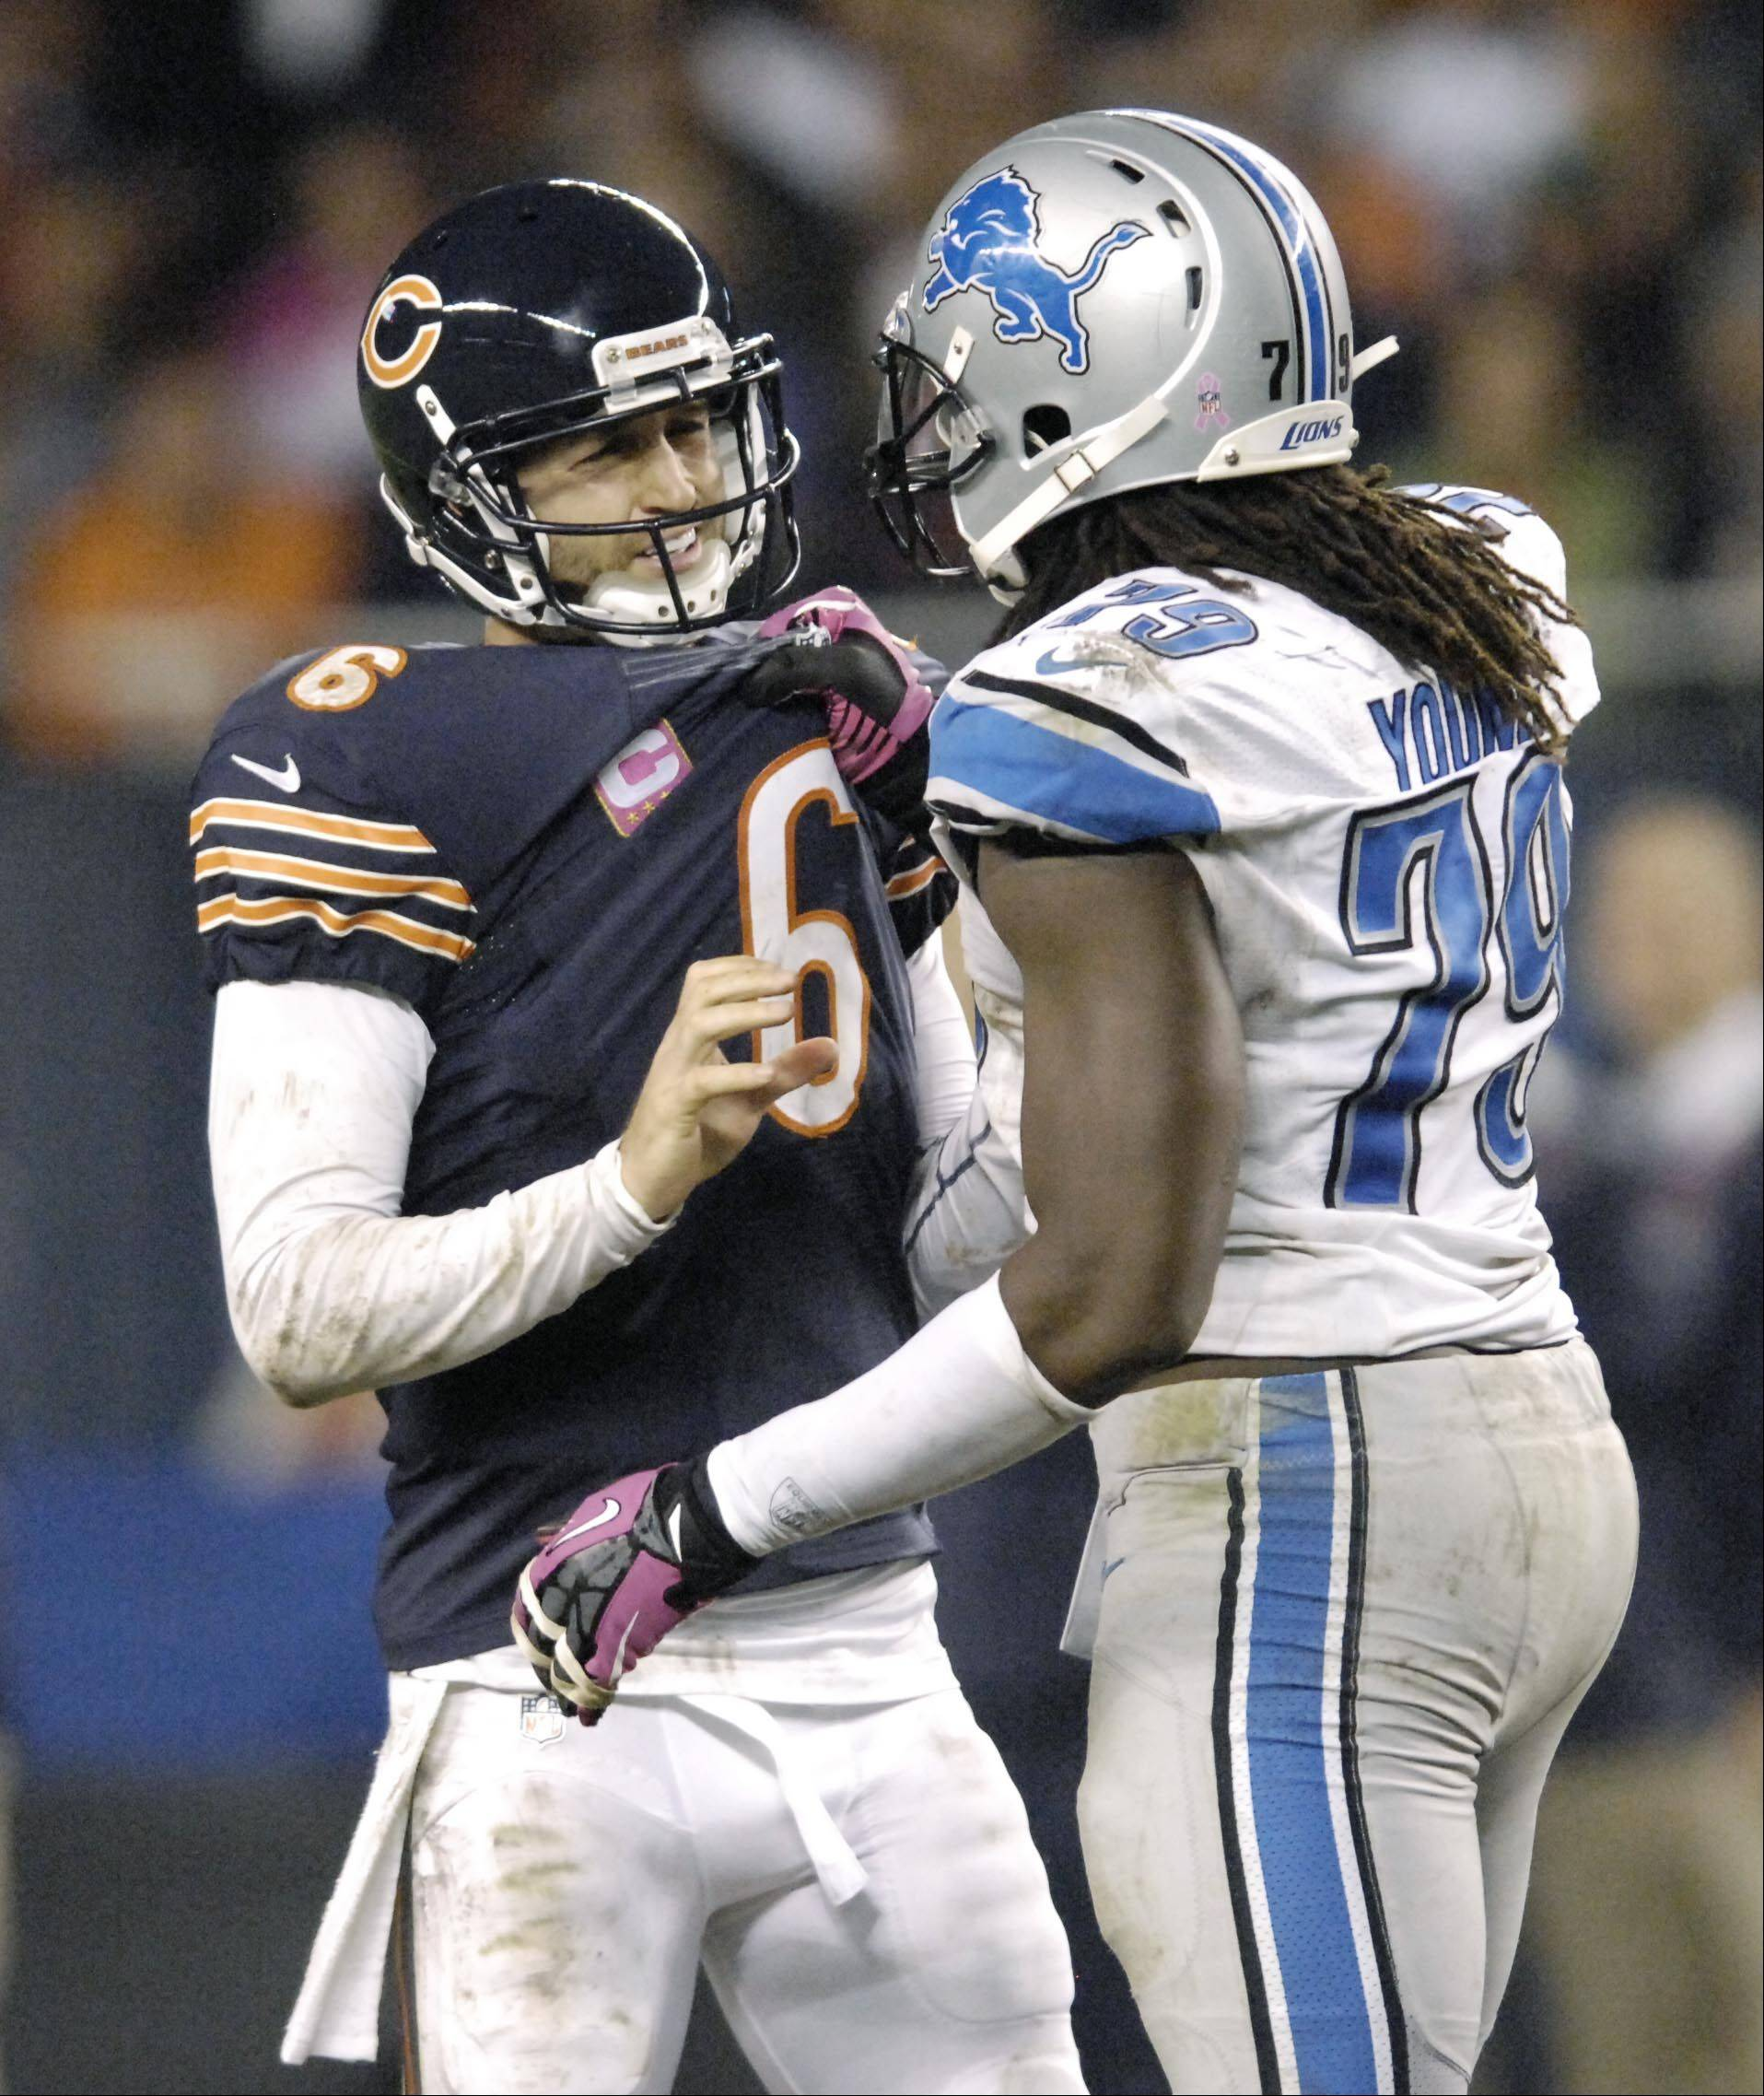 Detroit Lions defensive end Willie Young and Chicago Bears quarterback Jay Cutler shove each other late in the game.